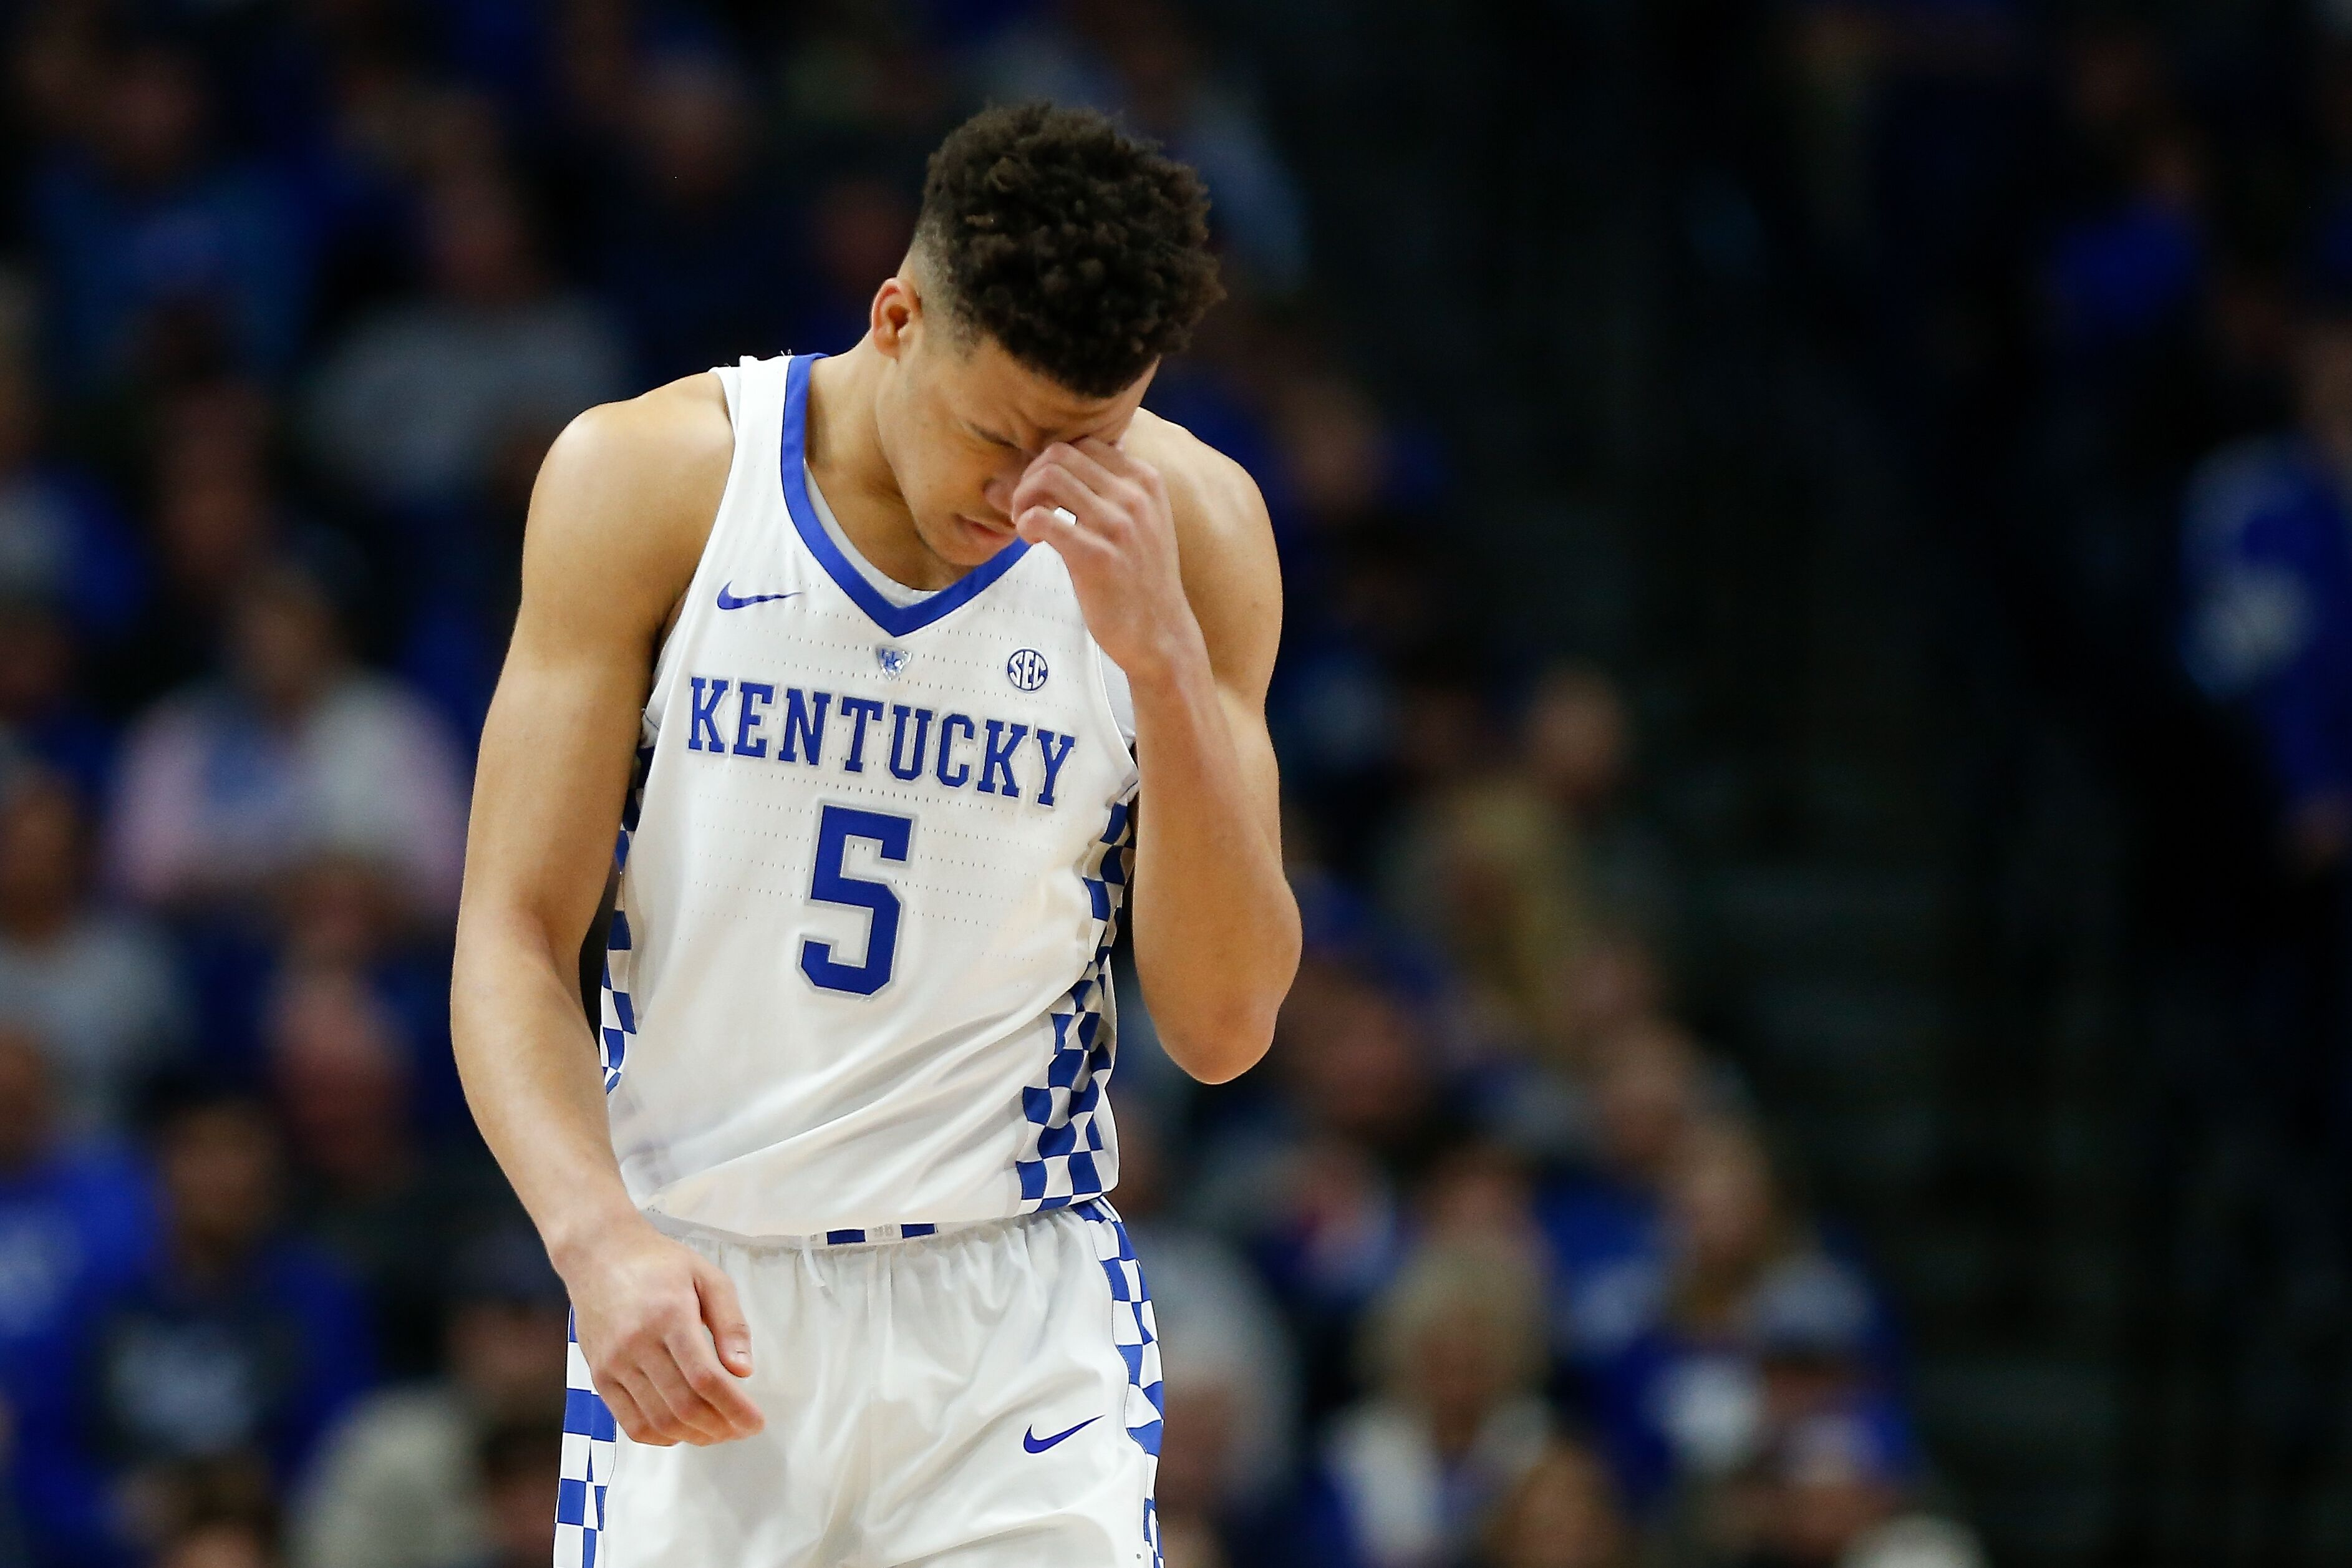 Uk Basketball: Kentucky Basketball: What's Wrong With The Wildcats?